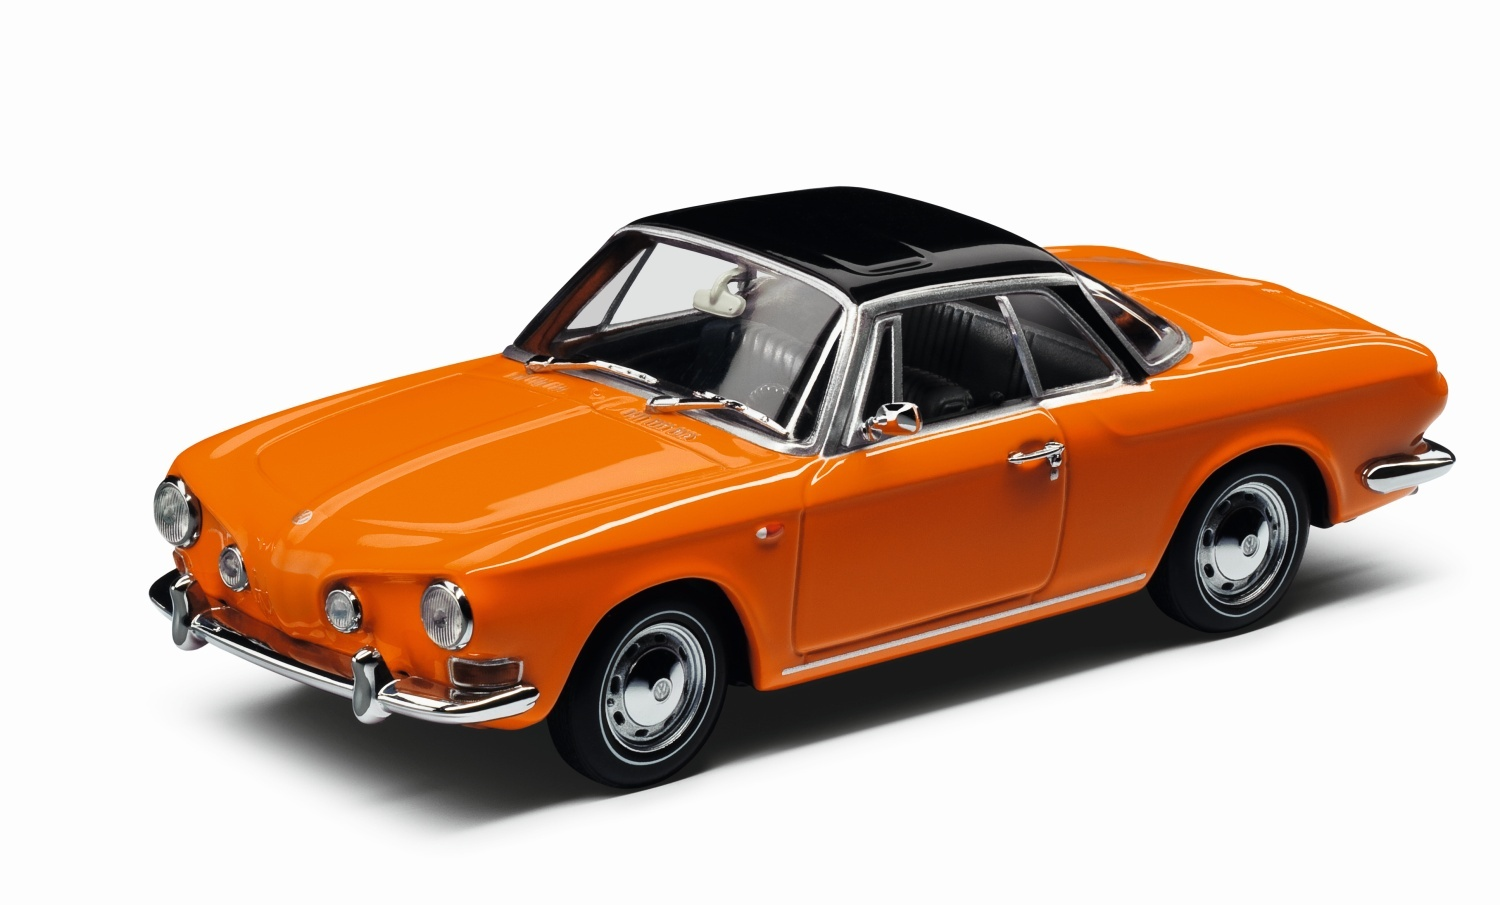 Karmann Ghia Coupé Tipo 34, escala 1:43